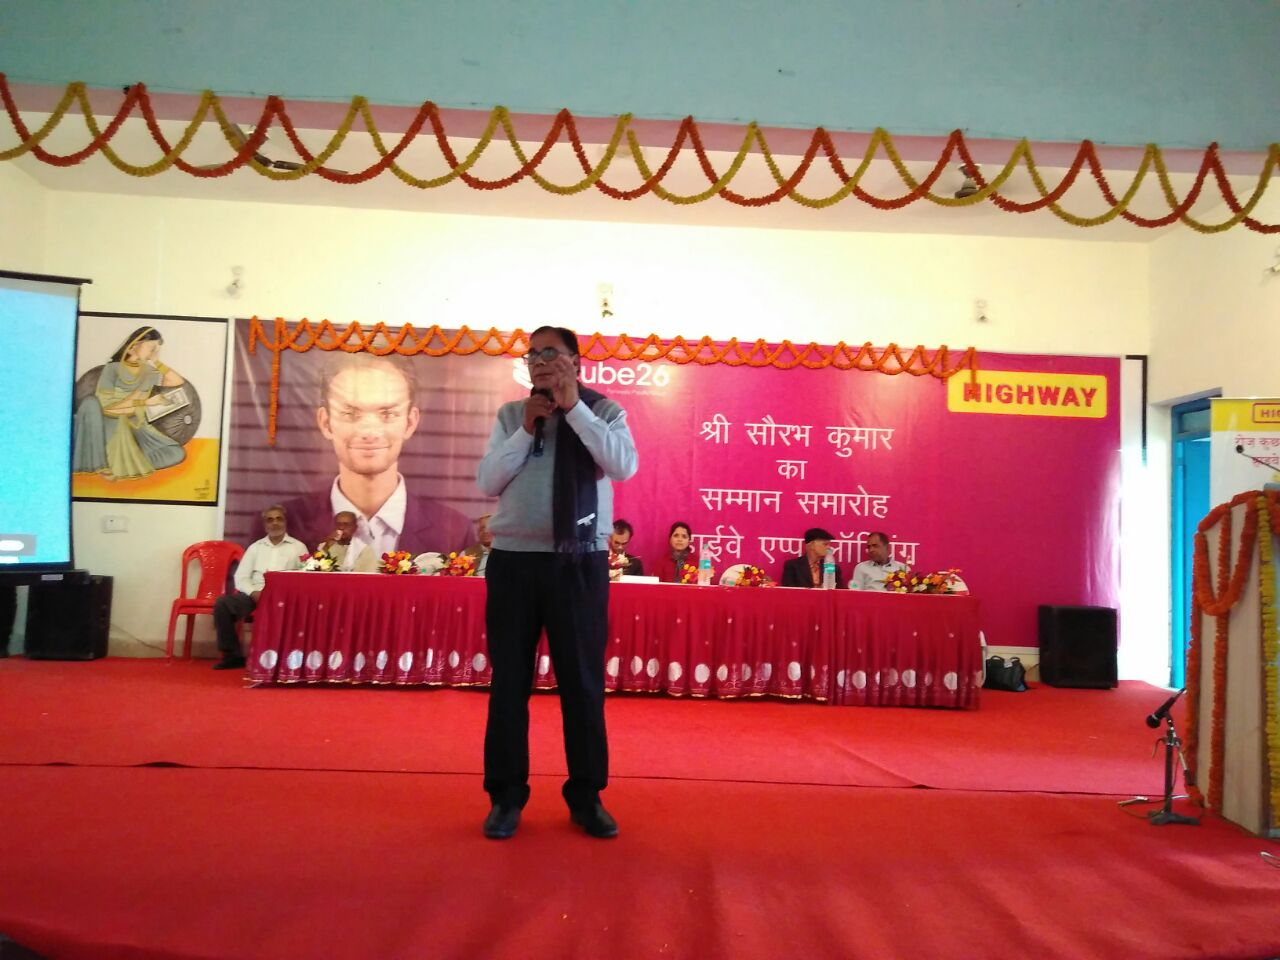 Physics Stalwart Dr.Bhupendra Madhepuri addressing the audience on the occasion of Samman Samaroh of Saurabh Kumar and Highway App launching ceremony at Bhupendra Kala Bhawan, Madhepura .